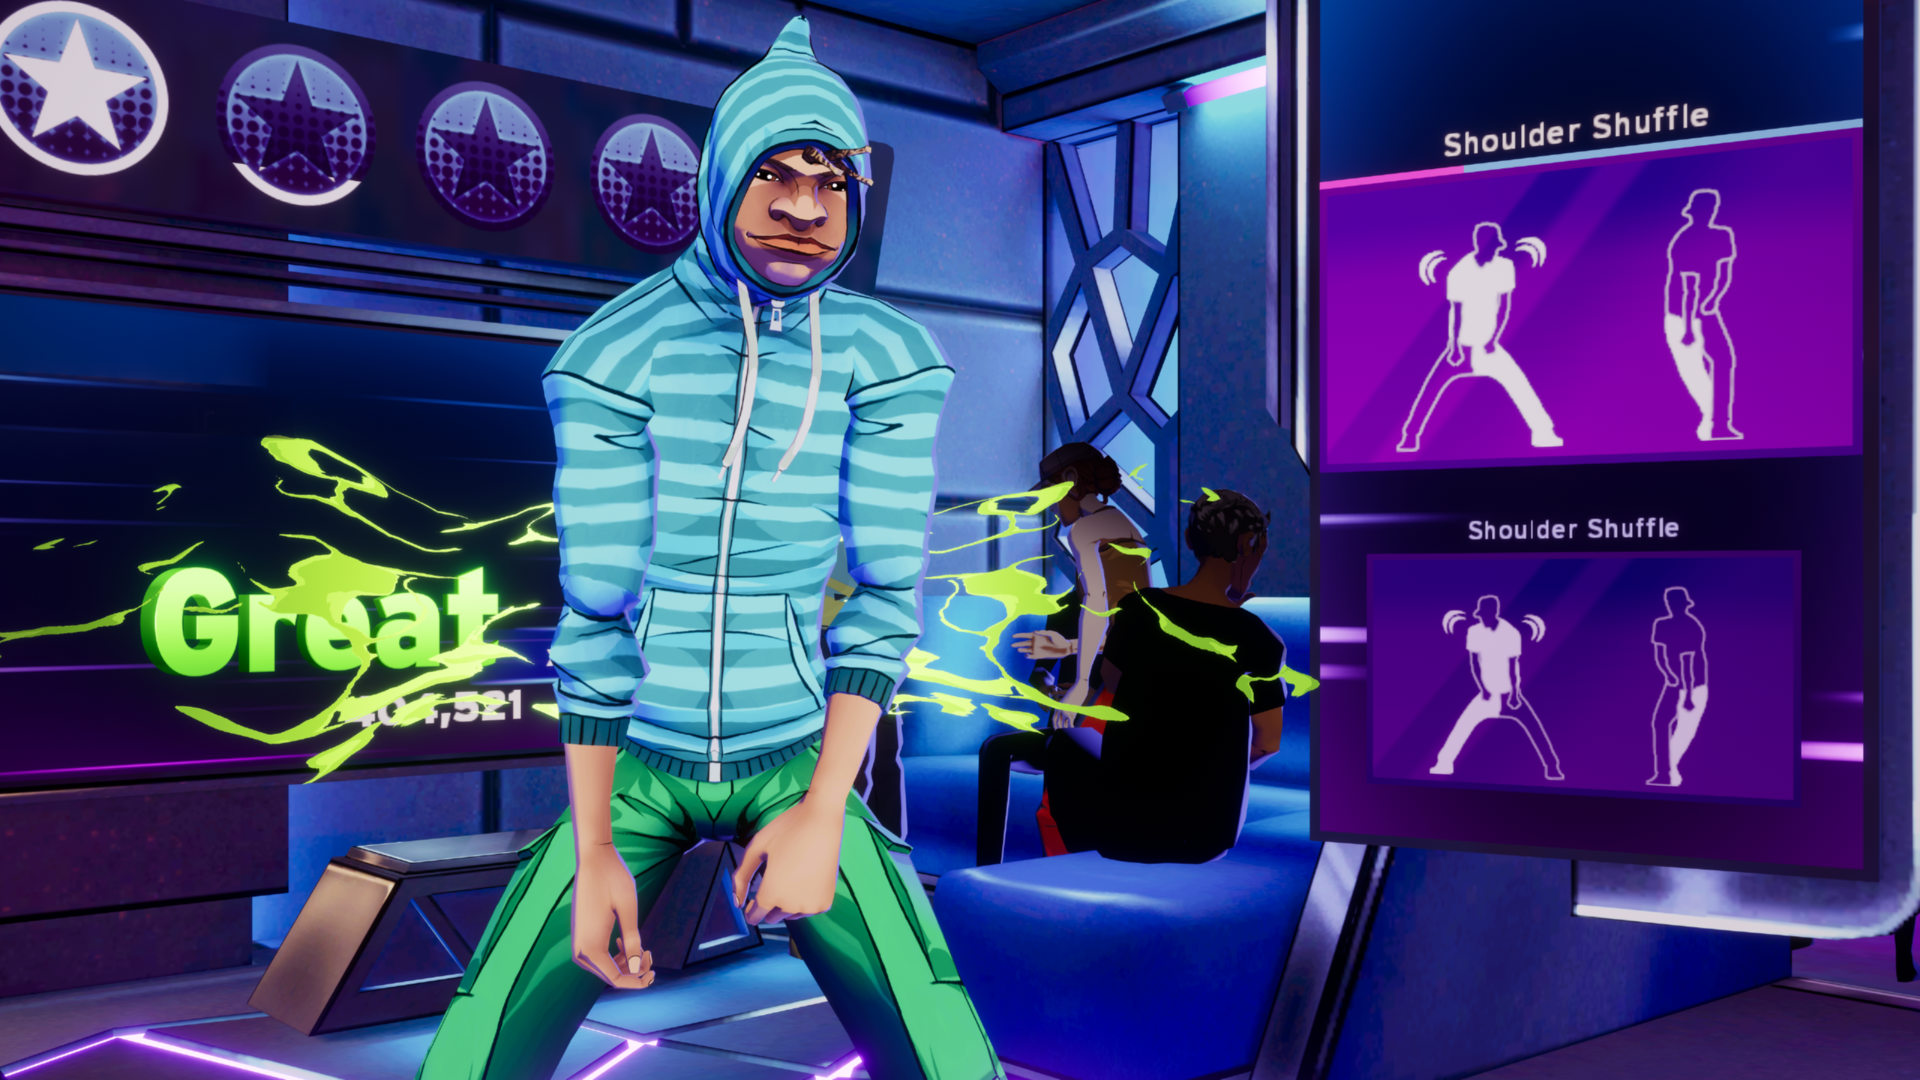 Rhythm Recreation 'Dance Central VR' is Coming to Quest & Rift in Spring 2019 – Highway to VR 9